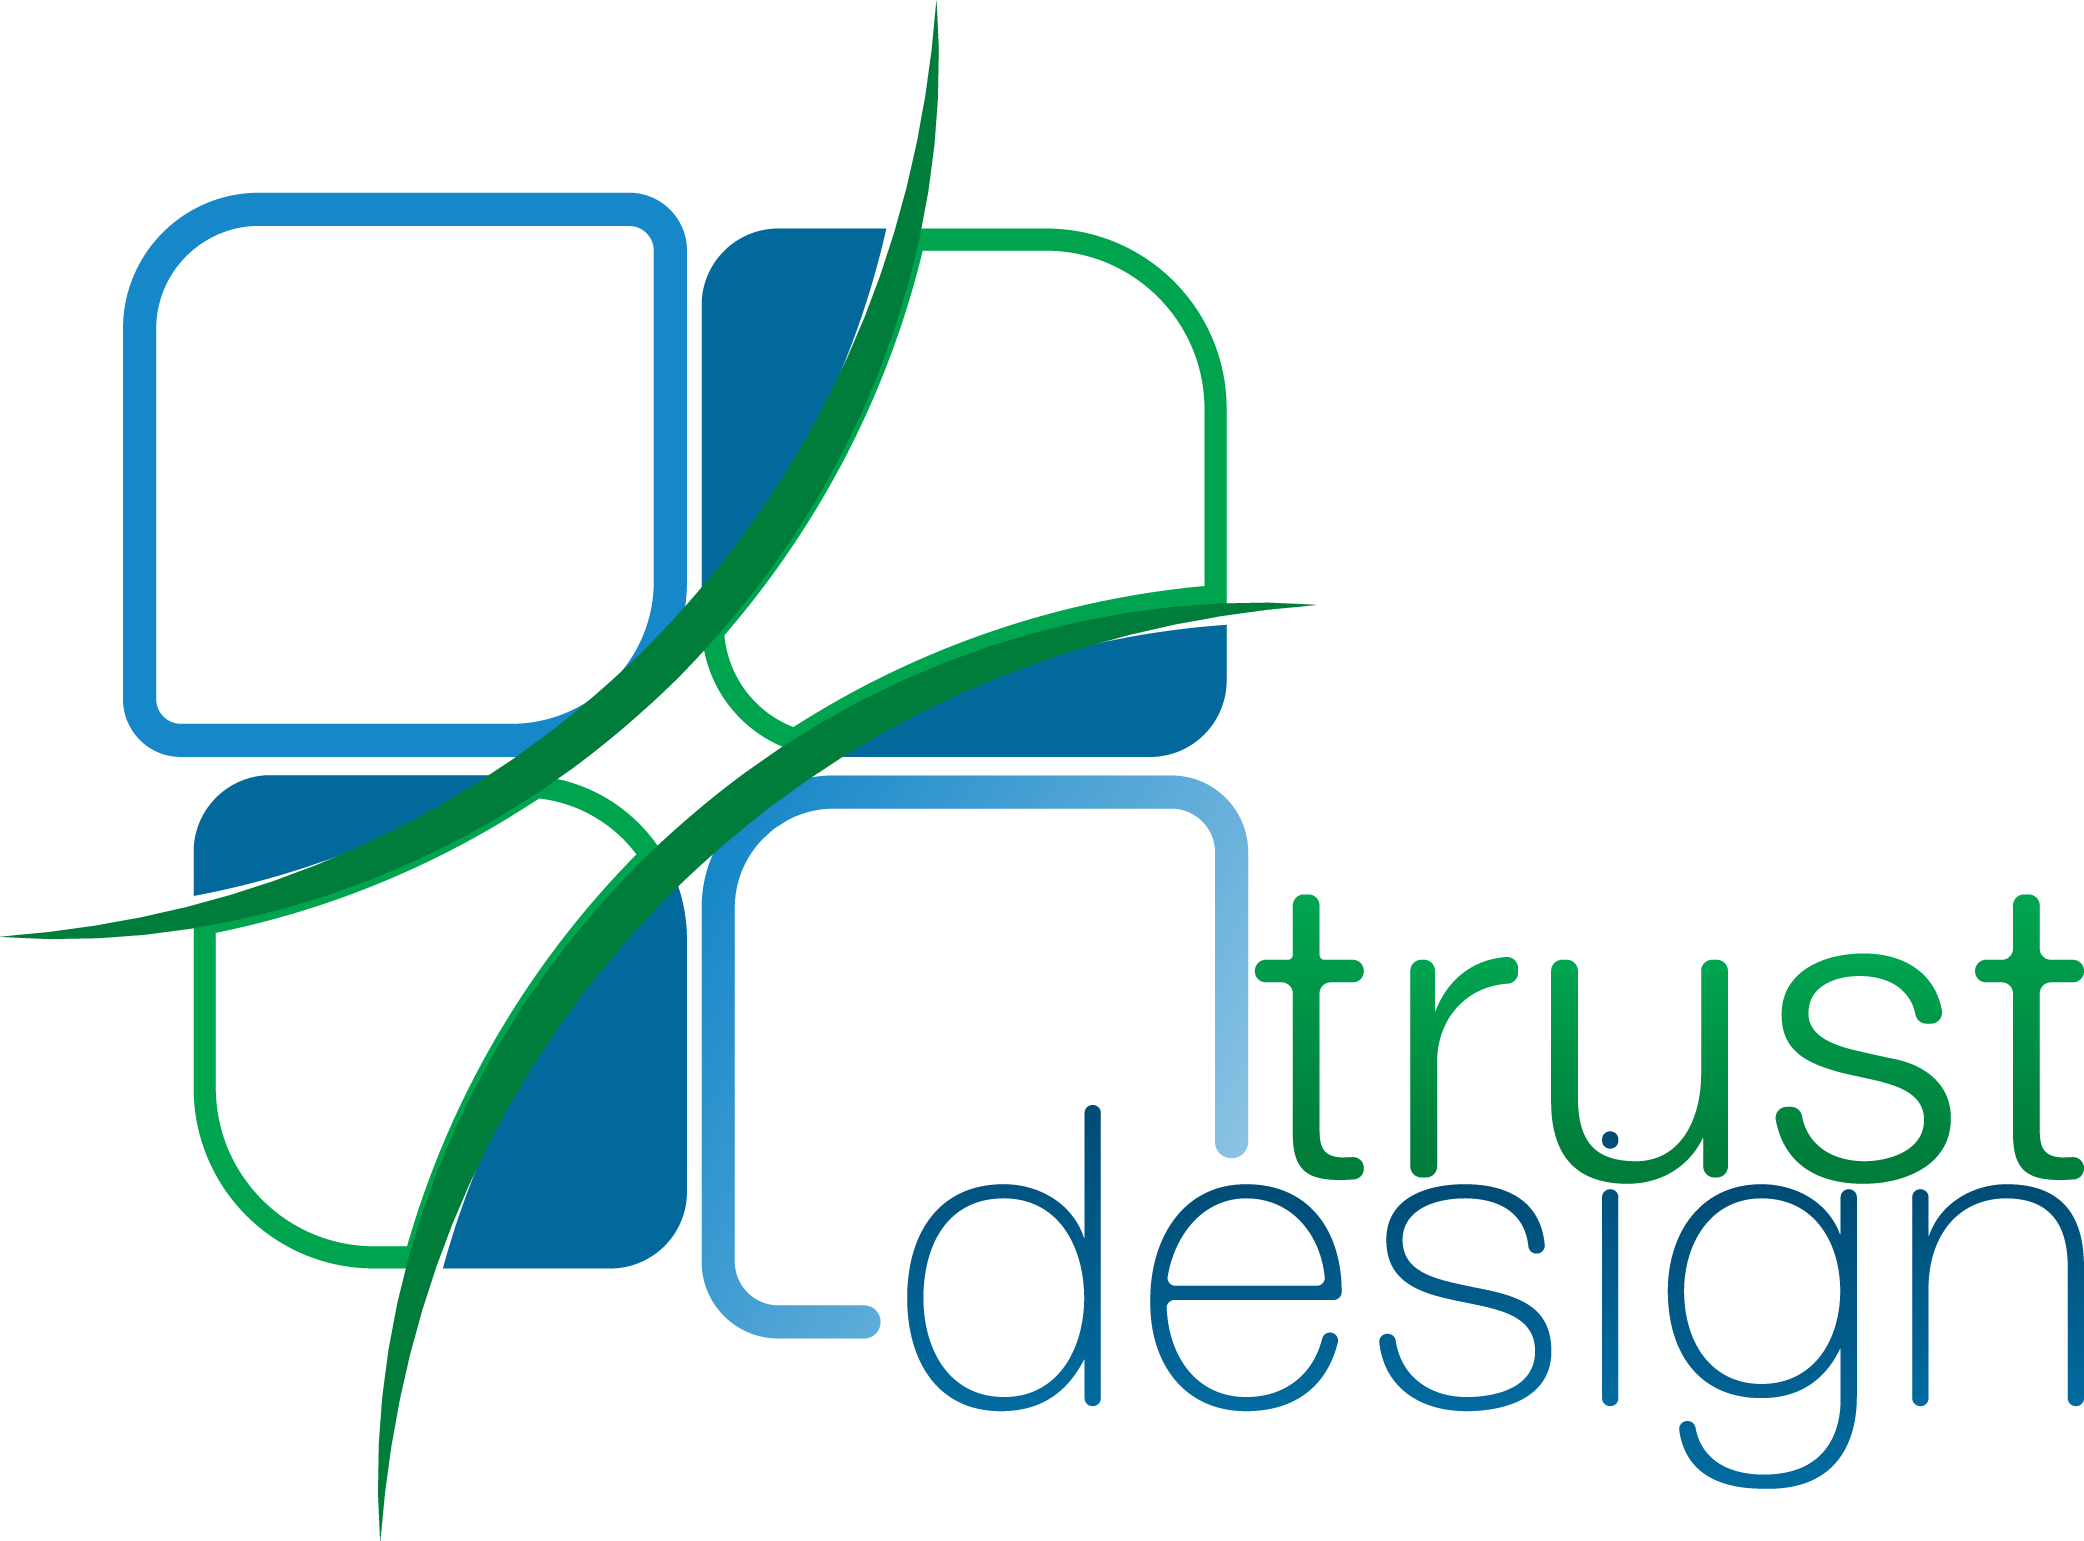 trustdesign.co